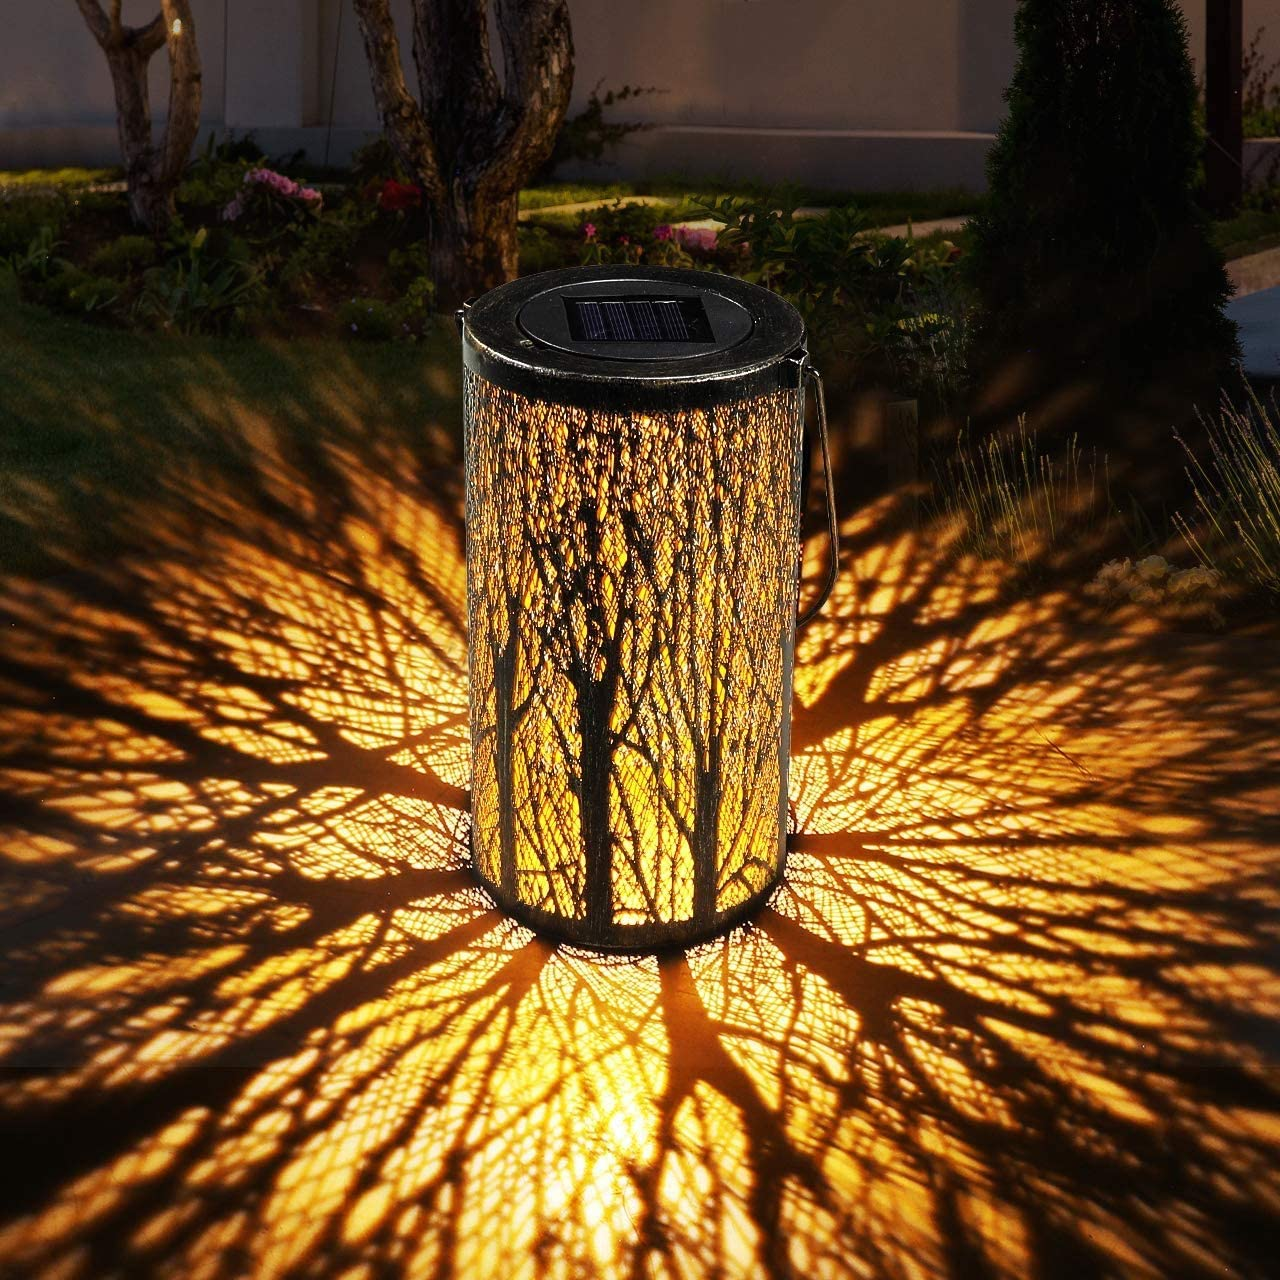 GolWof Solar Lantern Outdoor Hanging, Hanging Solar Garden Lights Decorative Retro Metal Waterproof Solar Lamp for Patio Yard Pathway Walkway Terrace Decorative - Black